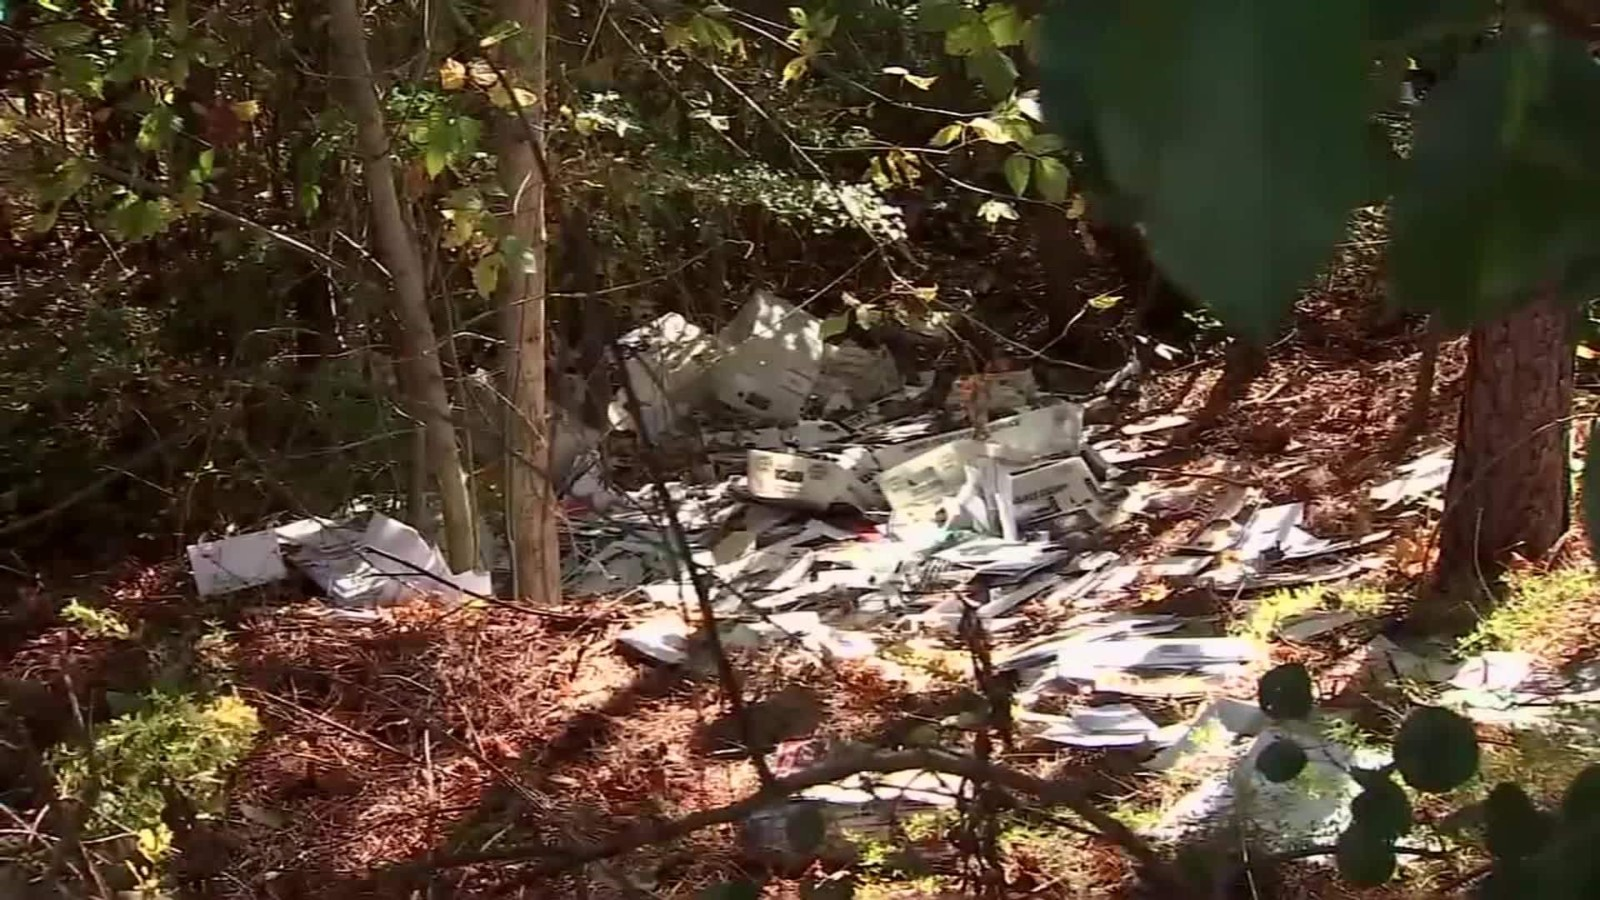 Piles of mail dumped in woods